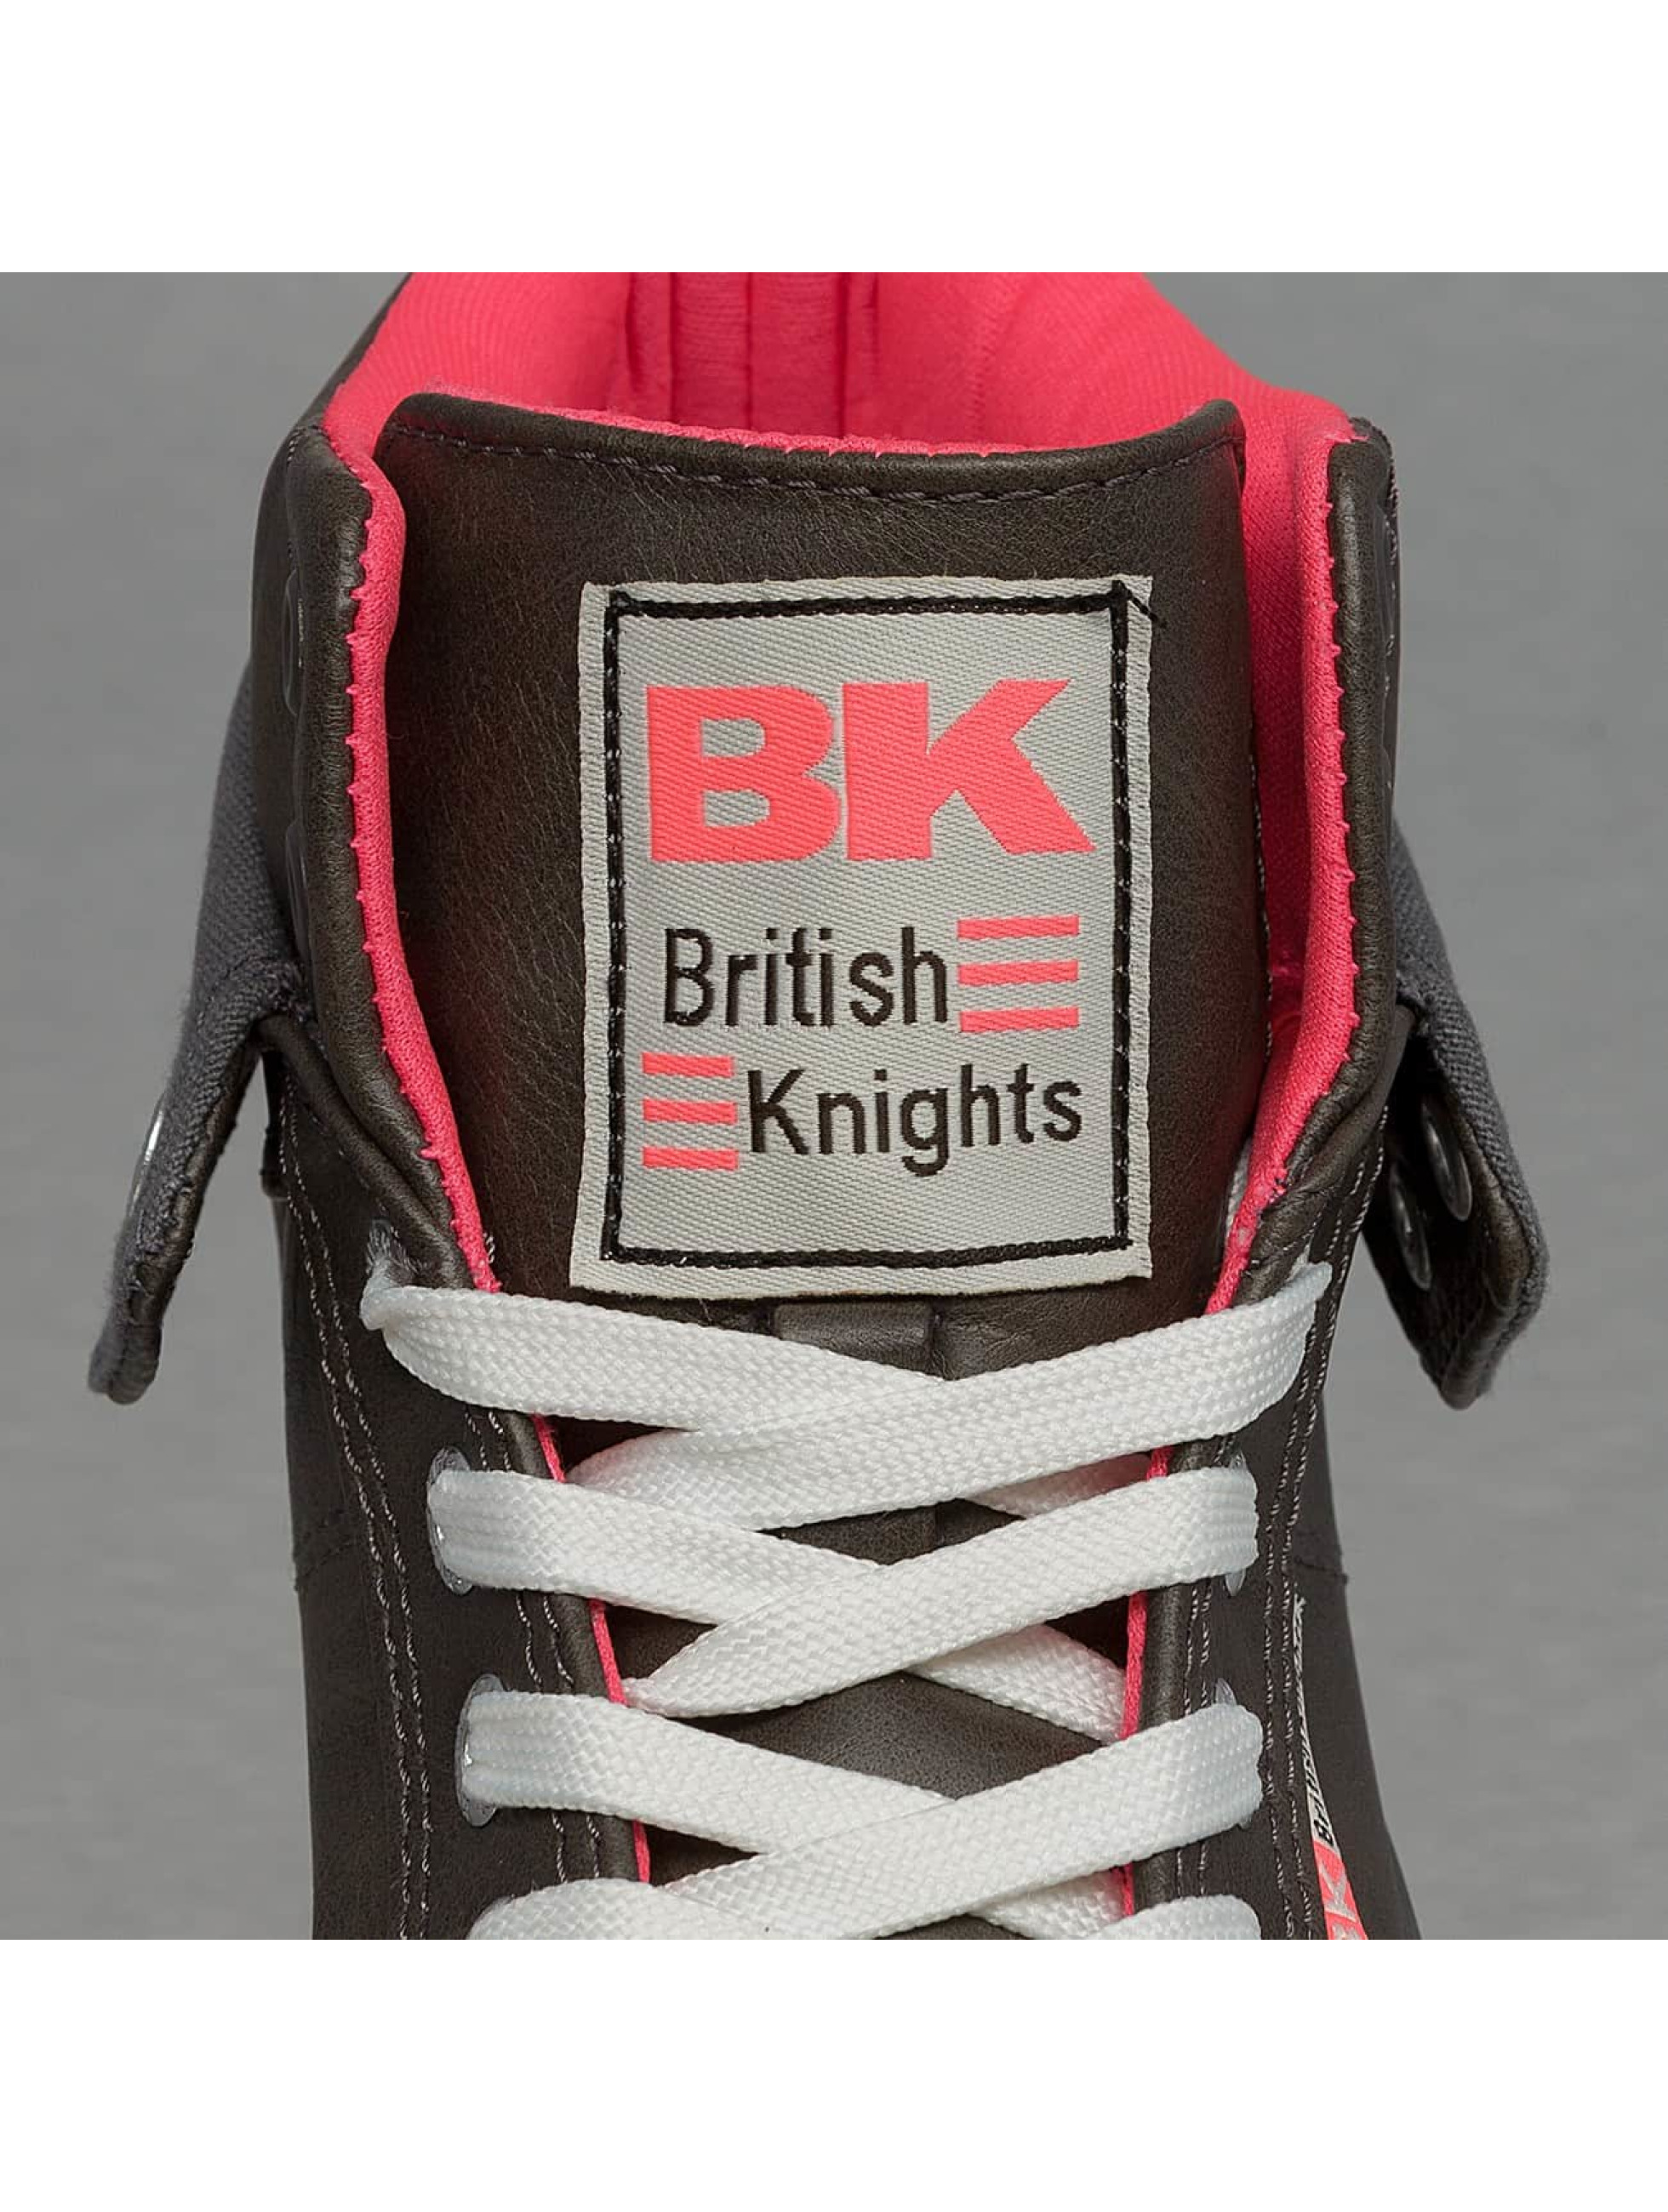 British Knights Tennarit Roco PU harmaa